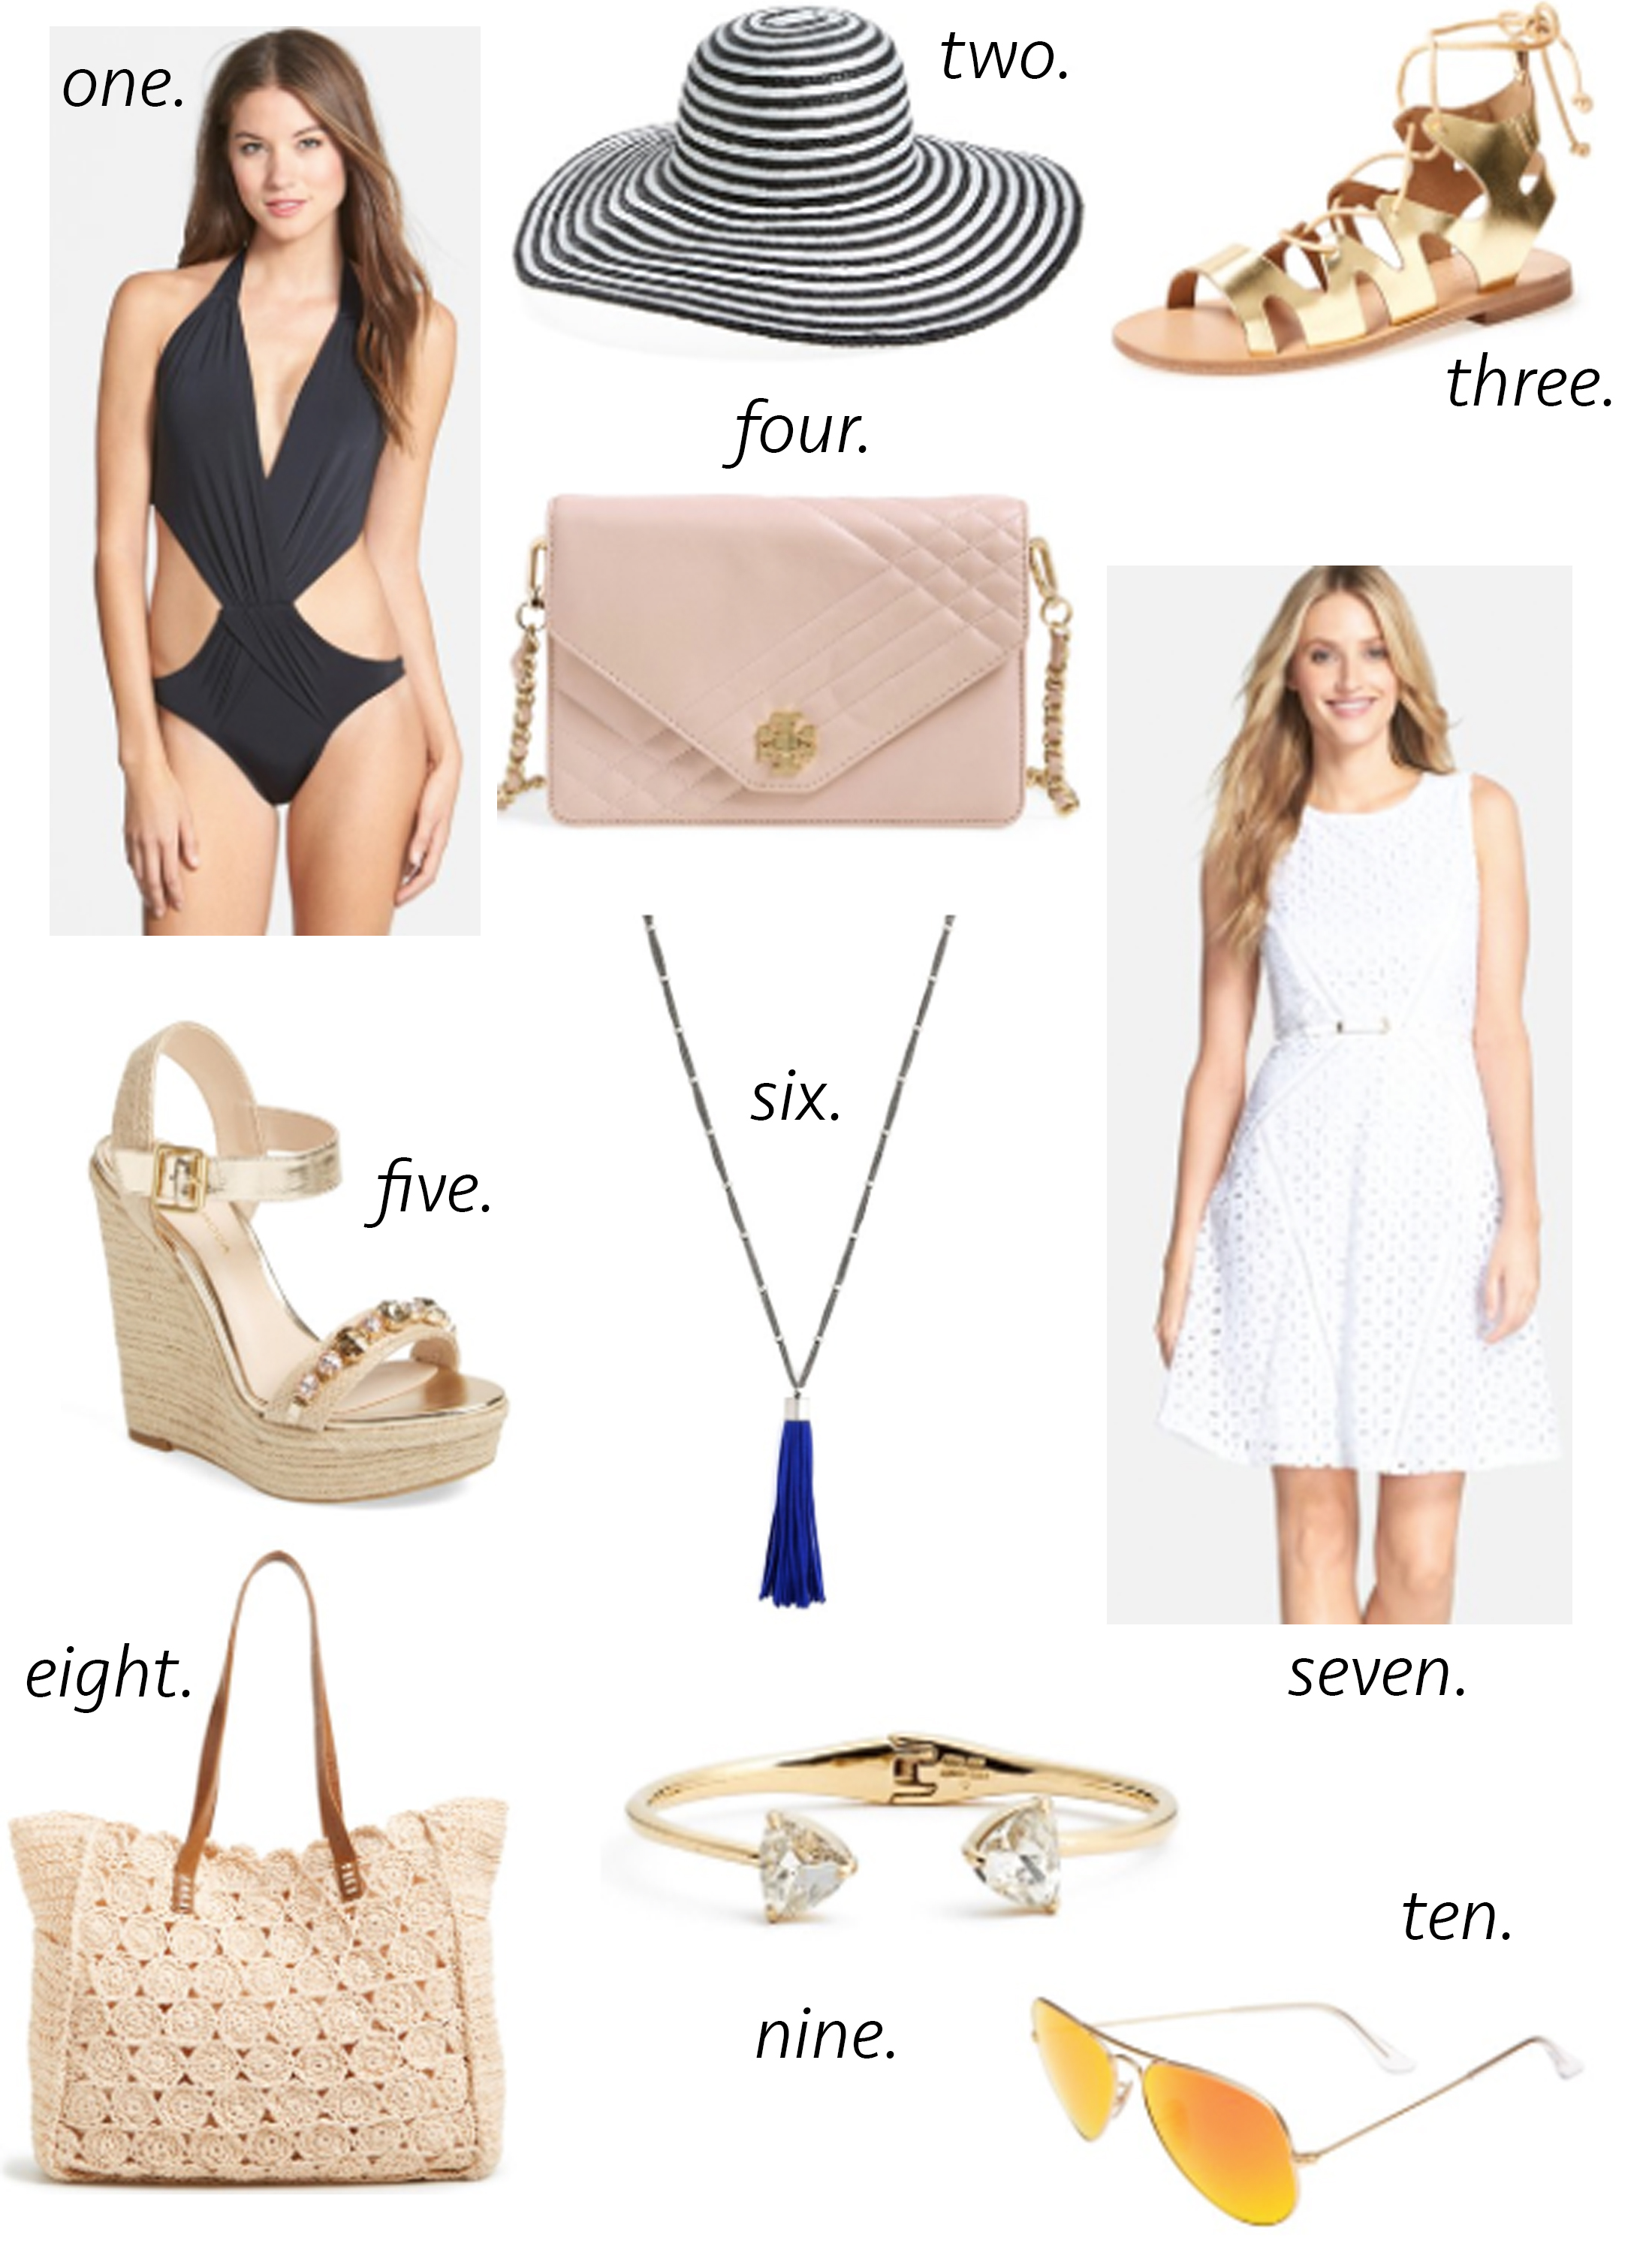 missyonmadison, packing guide, melissa tierney, san diego, del mar, race track, horse races, off to the races, what to wear to a horse race, what to wear in sandiego, california, la, travel, travel guide, white eyelet dress, tassel necklace, espadrille wedges, ray ban aviators, gladiator sandals, black bathing suit, sexy one piece, kate spade bangle, beach tote, floppy hat, striped floppy hat, straw tote, summer style, tory burch, tory burch cross body bag,